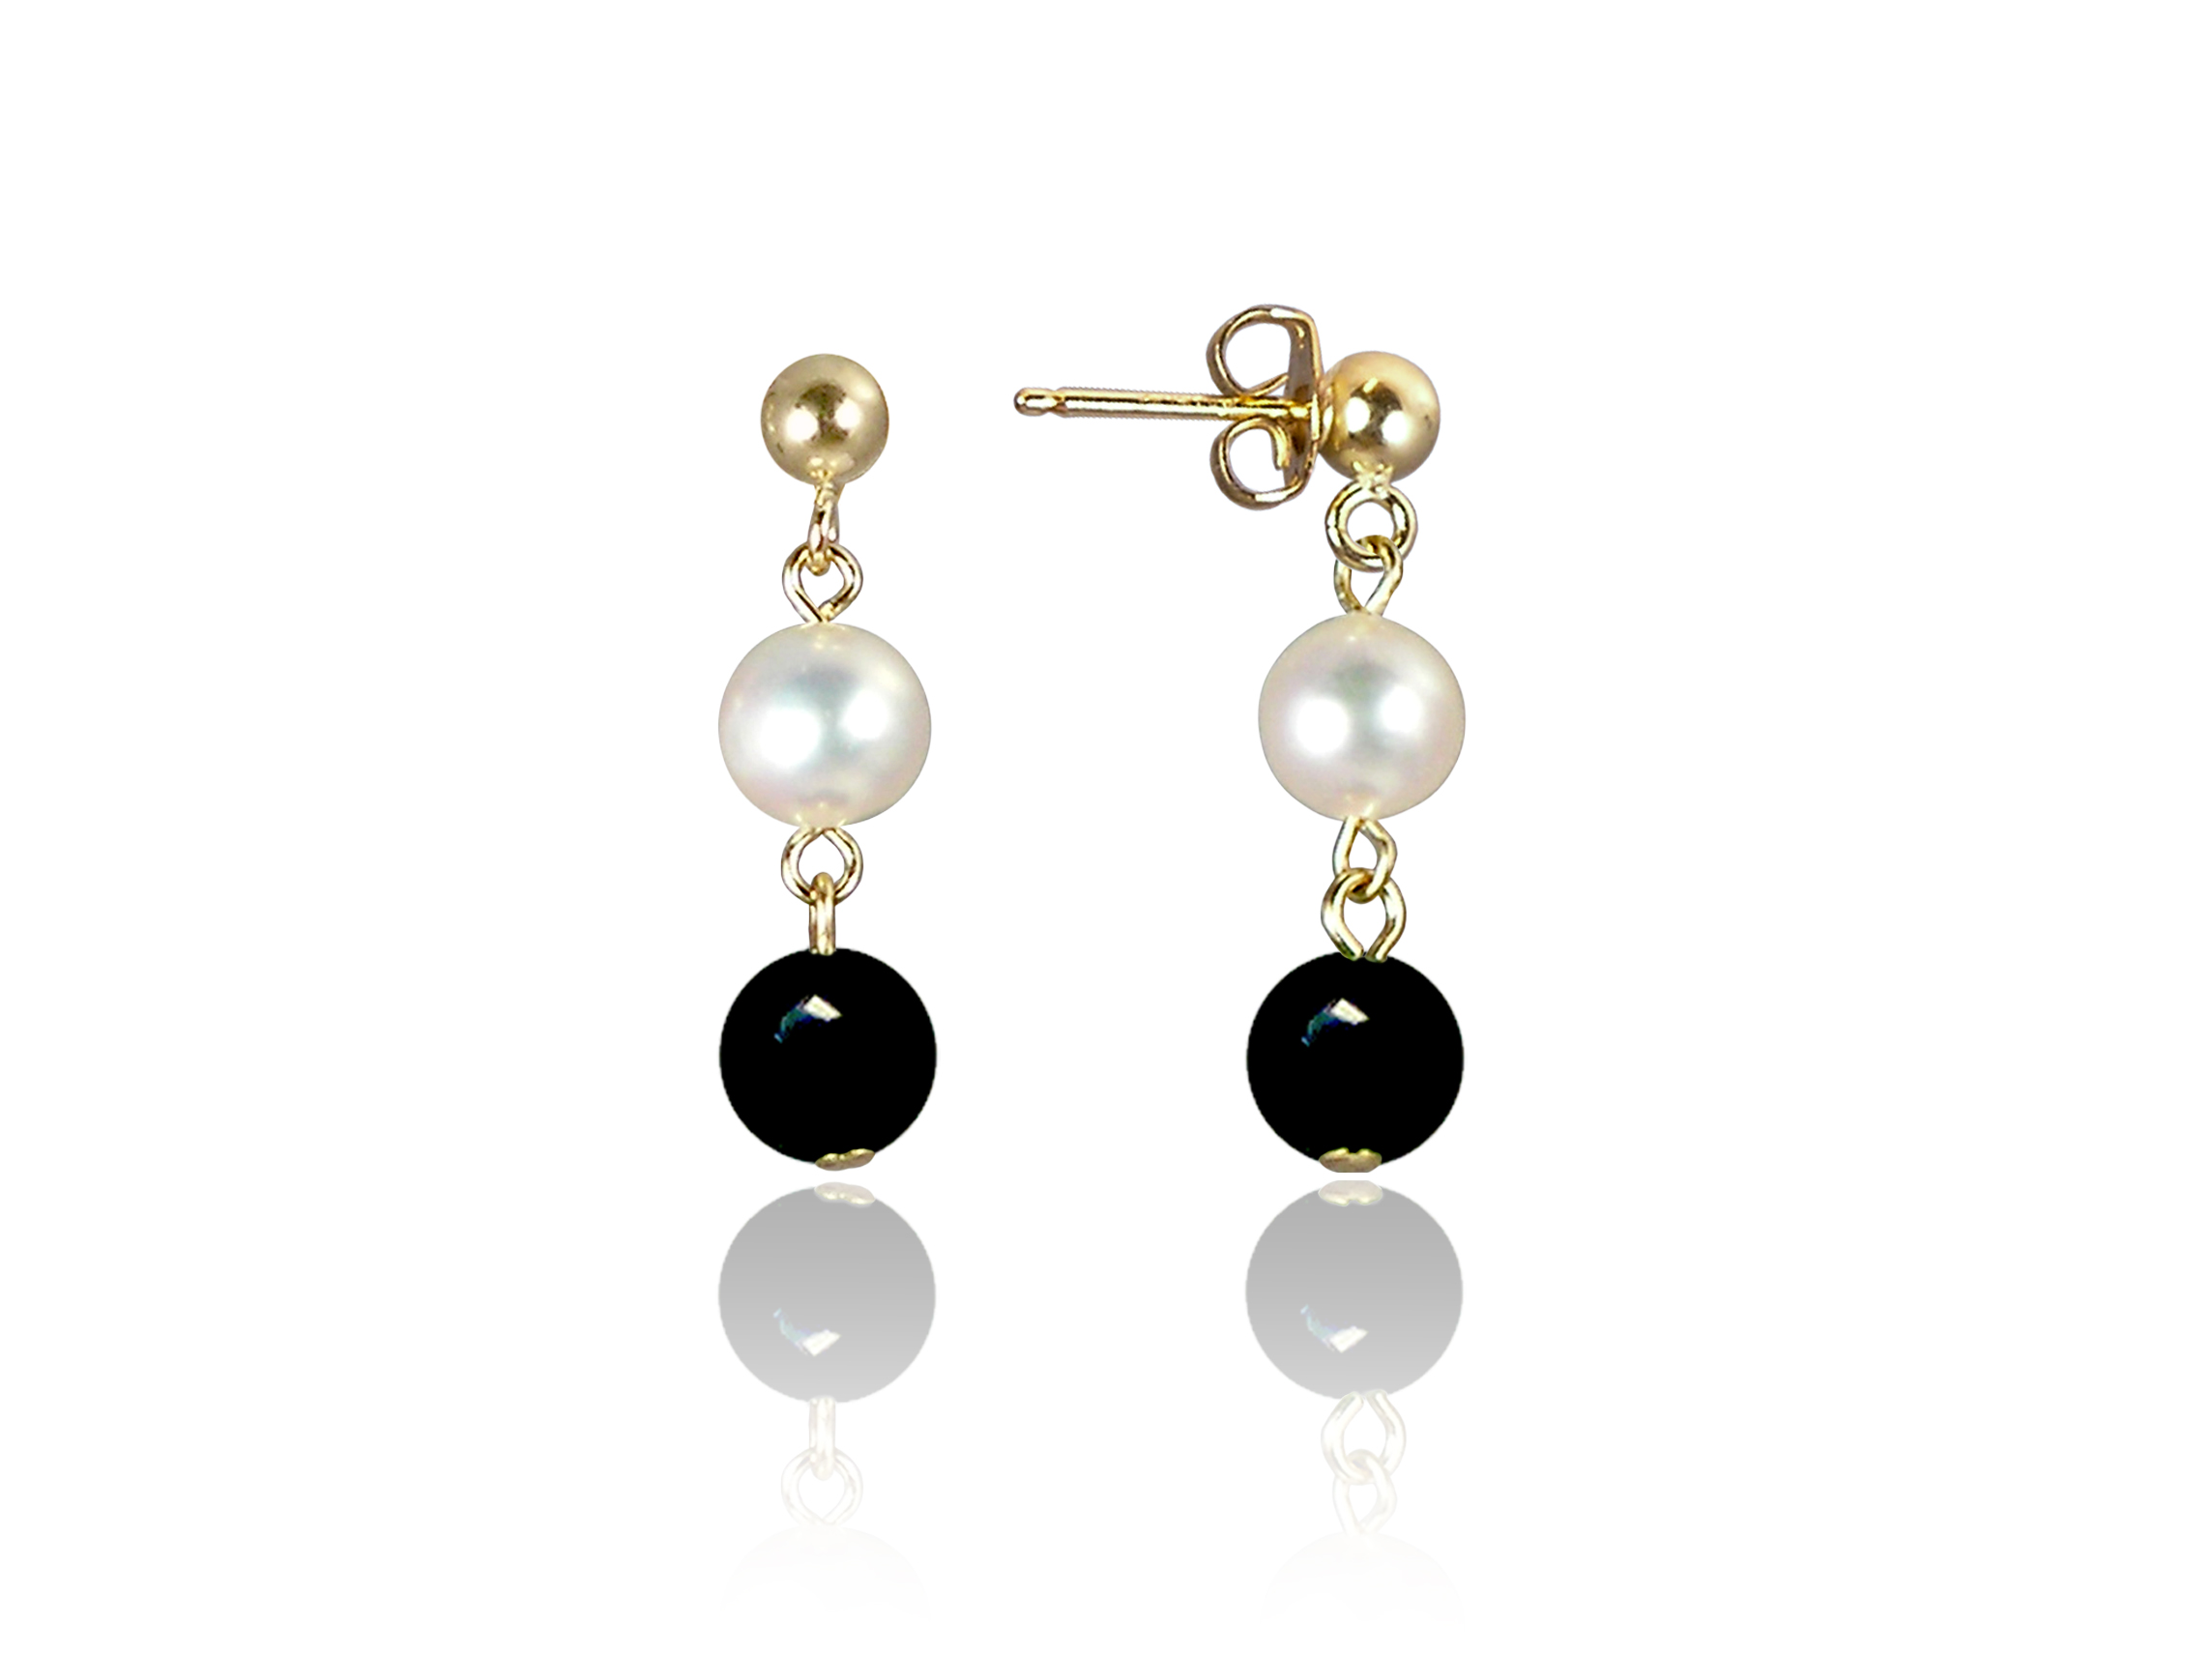 Freshwater Pearl and Black Onyx Earrings